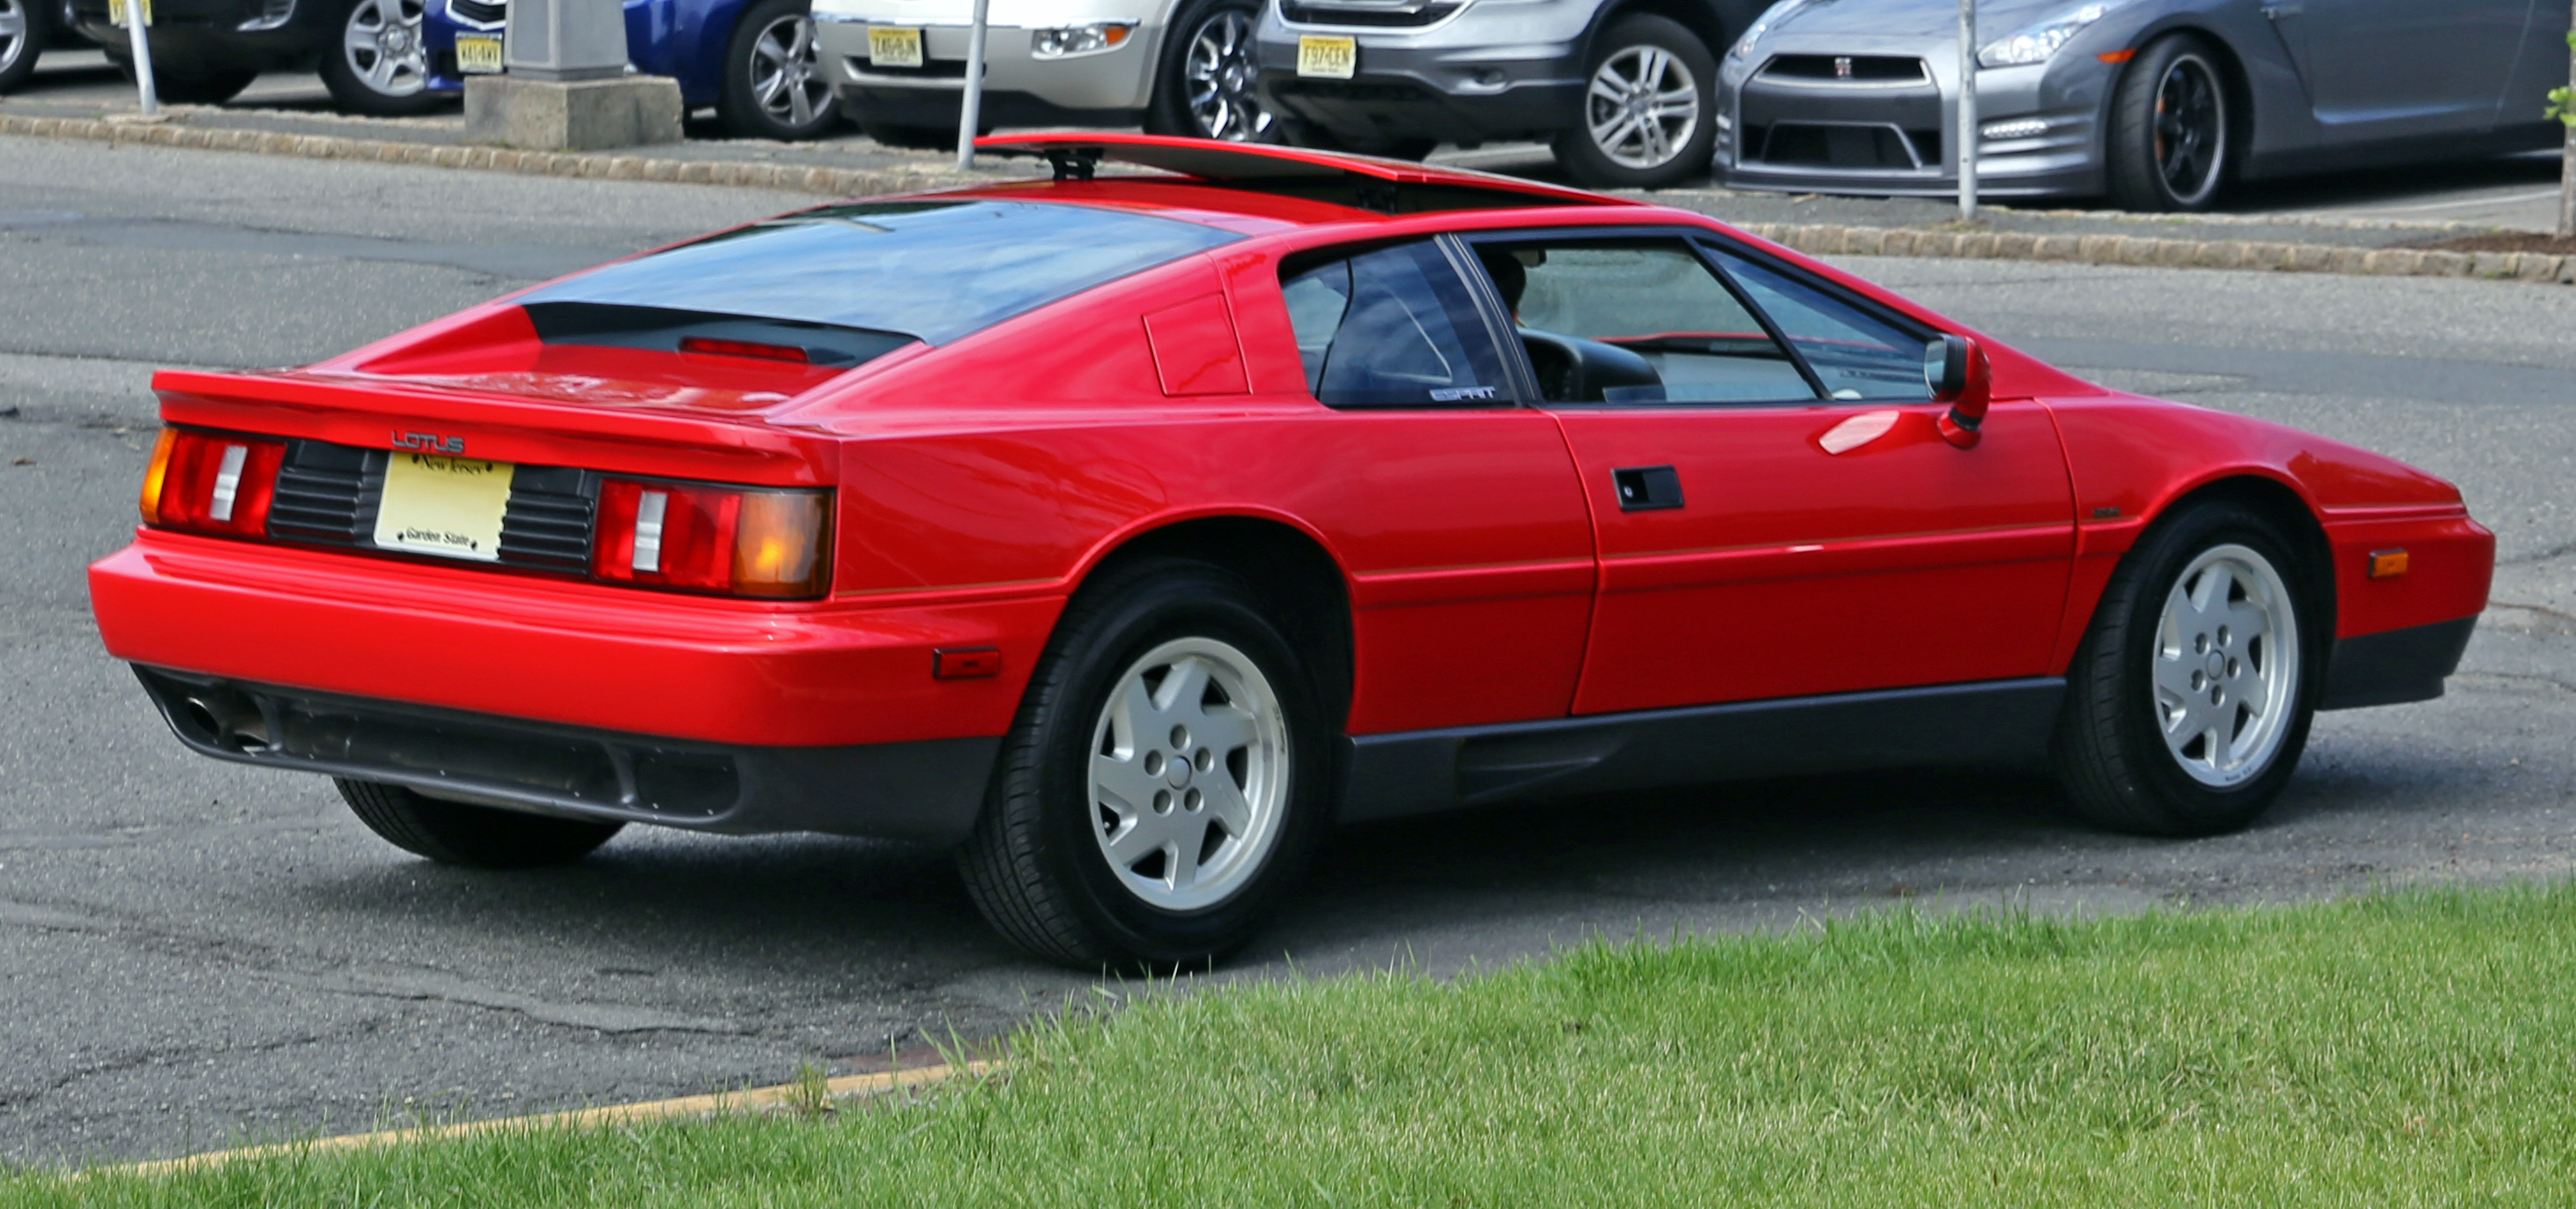 File 1989 Lotus Esprit Turbo Rear Federal Jpg Wikimedia